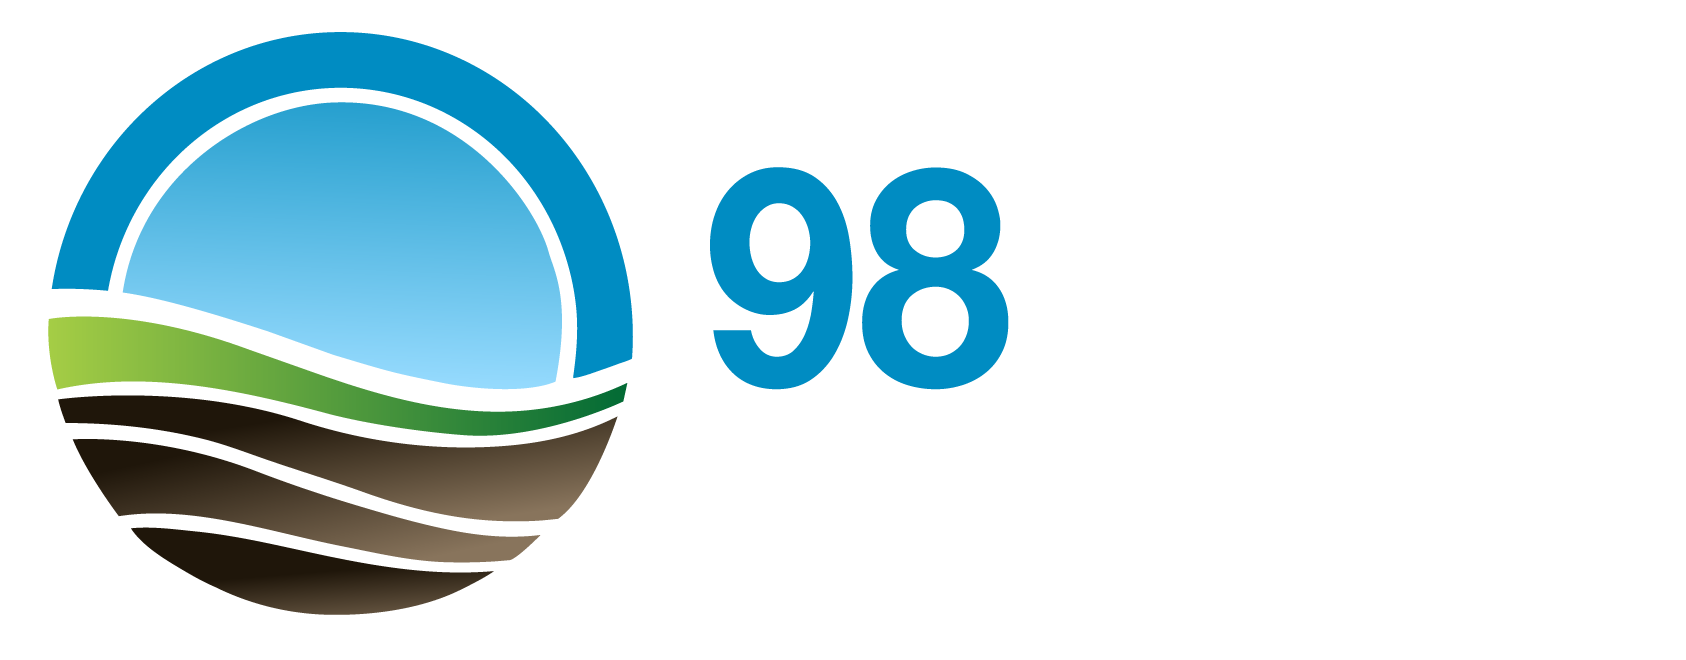 98toGo Content Marketing Company Logo